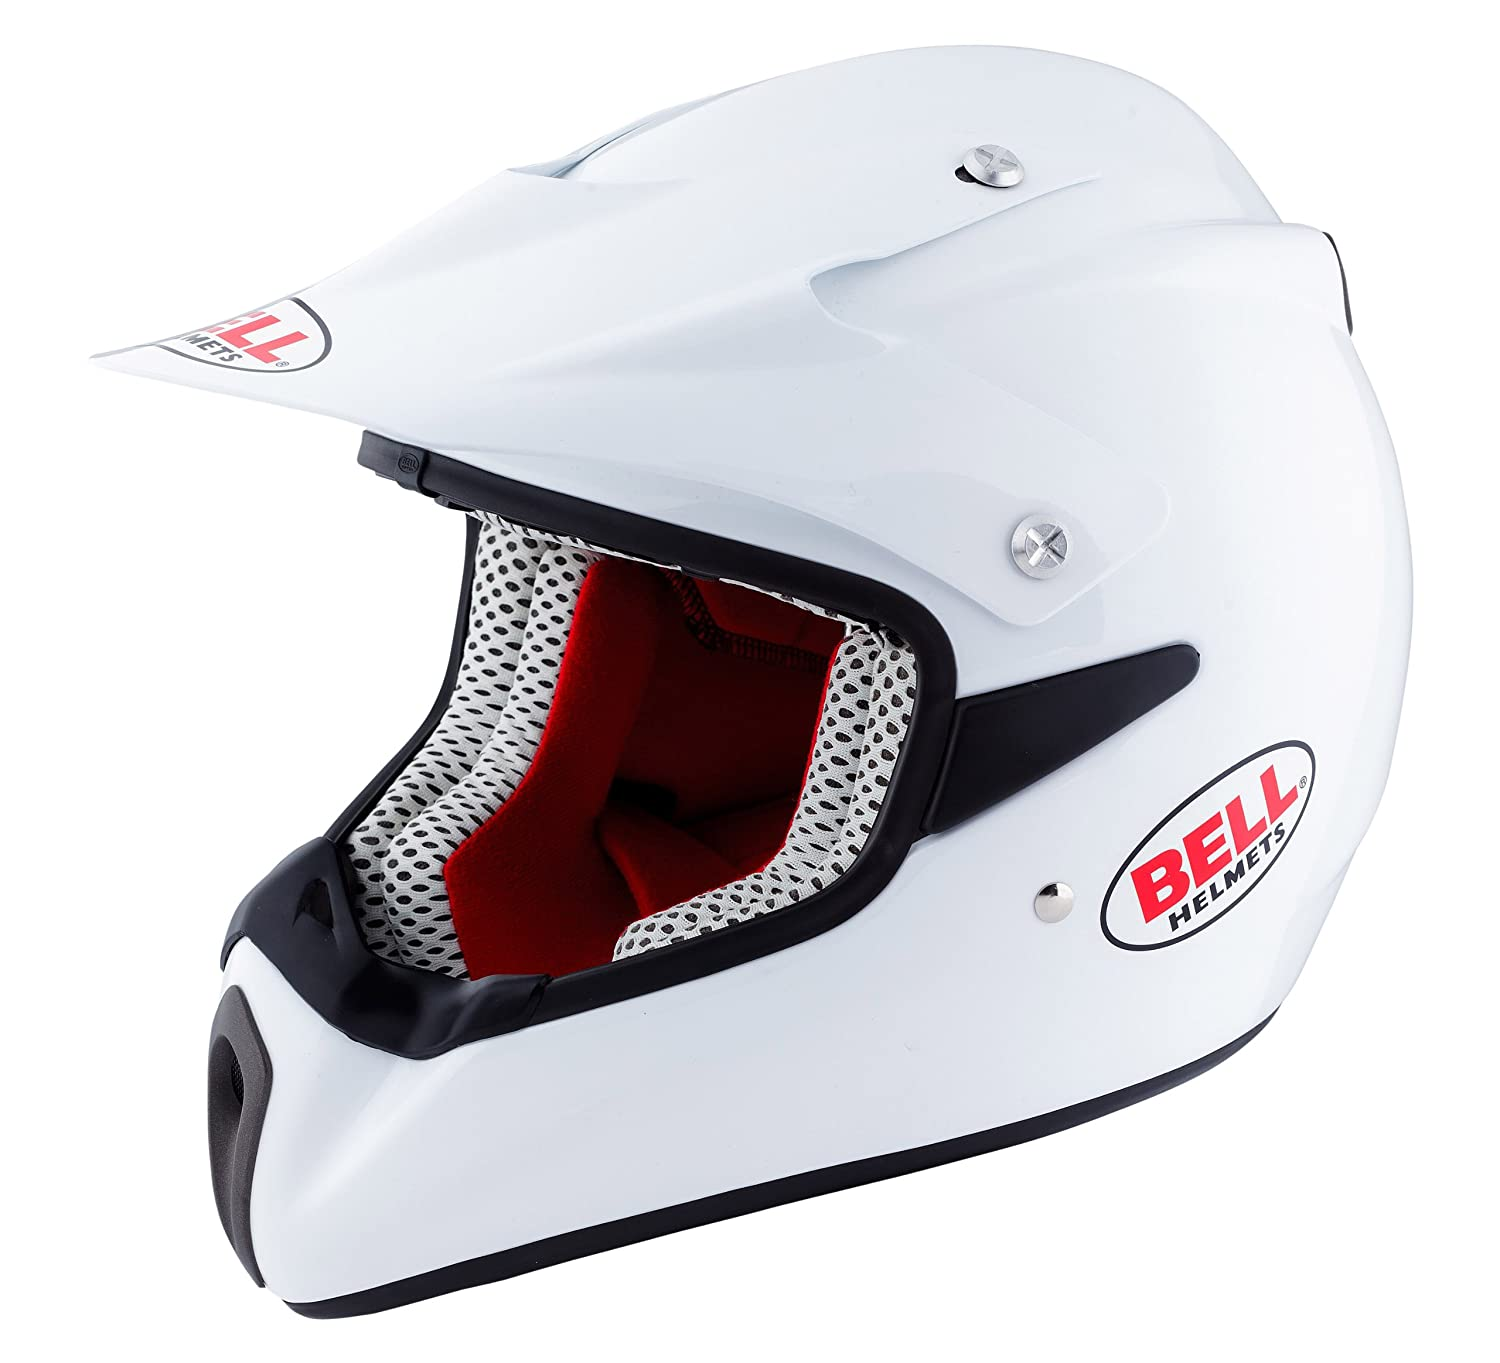 Bell a685fc5bl001-l cascos de motocross moto R clase Easton Bell Sports - UK uk automotive EAU6F